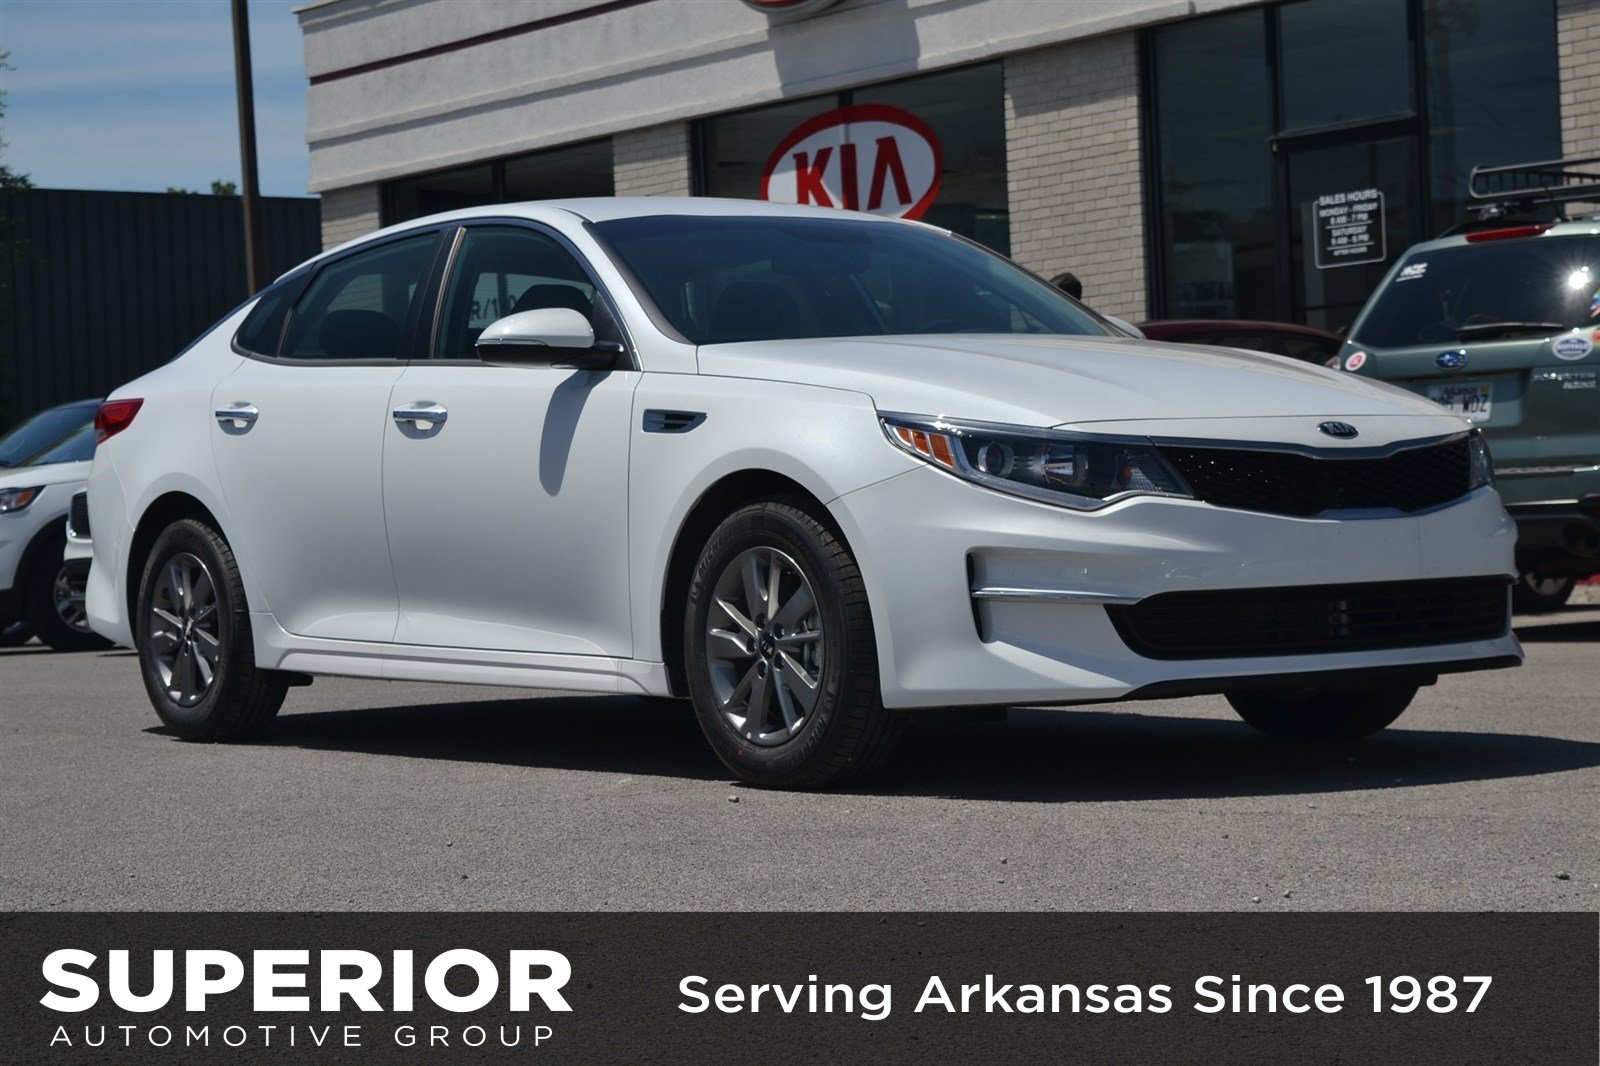 kia optima is florida augustine loaded blogs st fully in features big jacksonville on affordability dealers